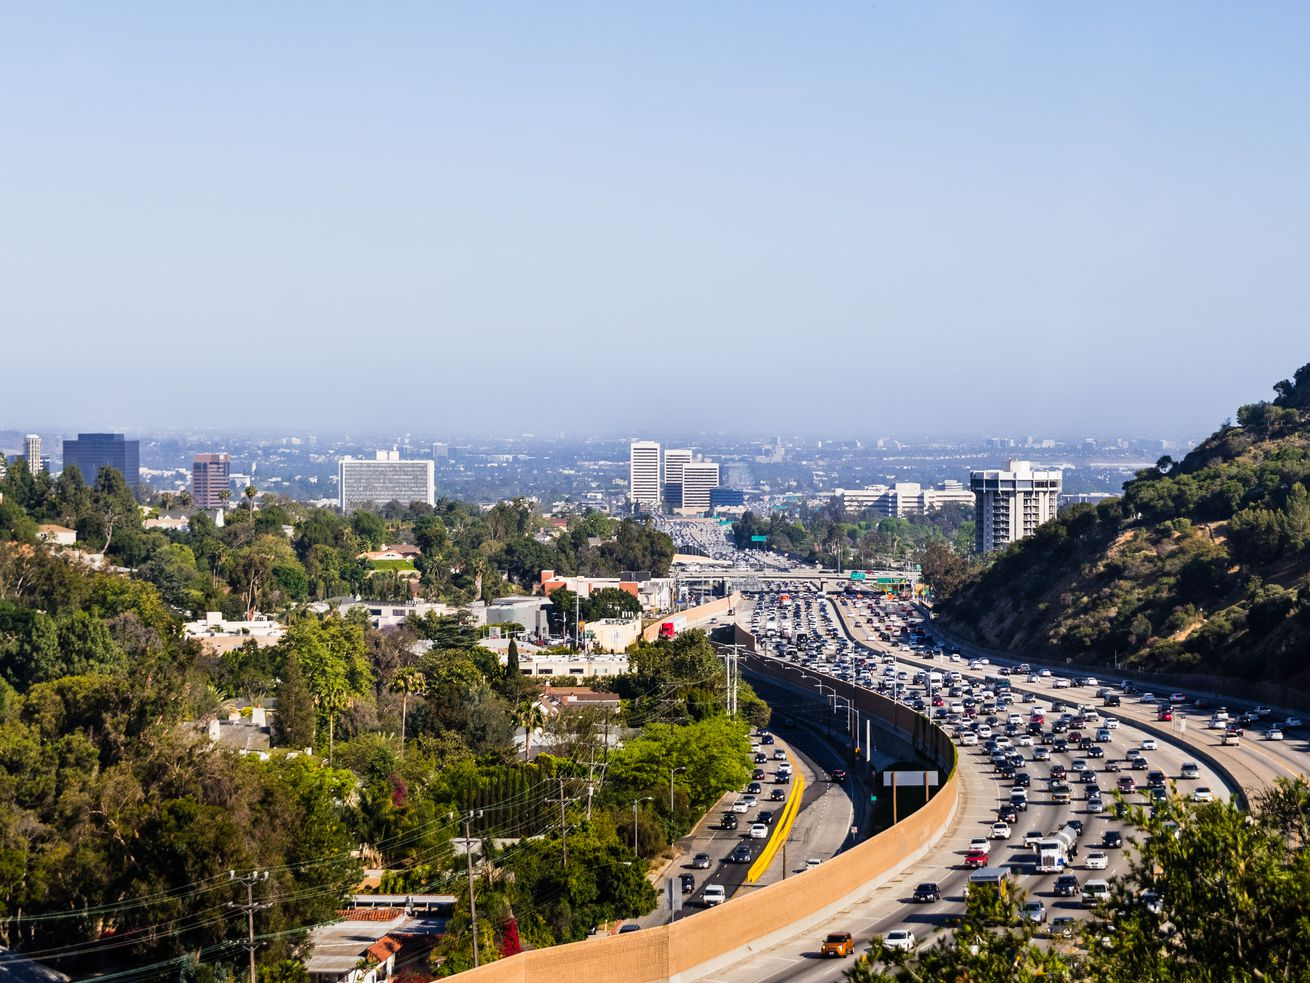 A northbound carpool lane was added to the 405 freeway in 2014.